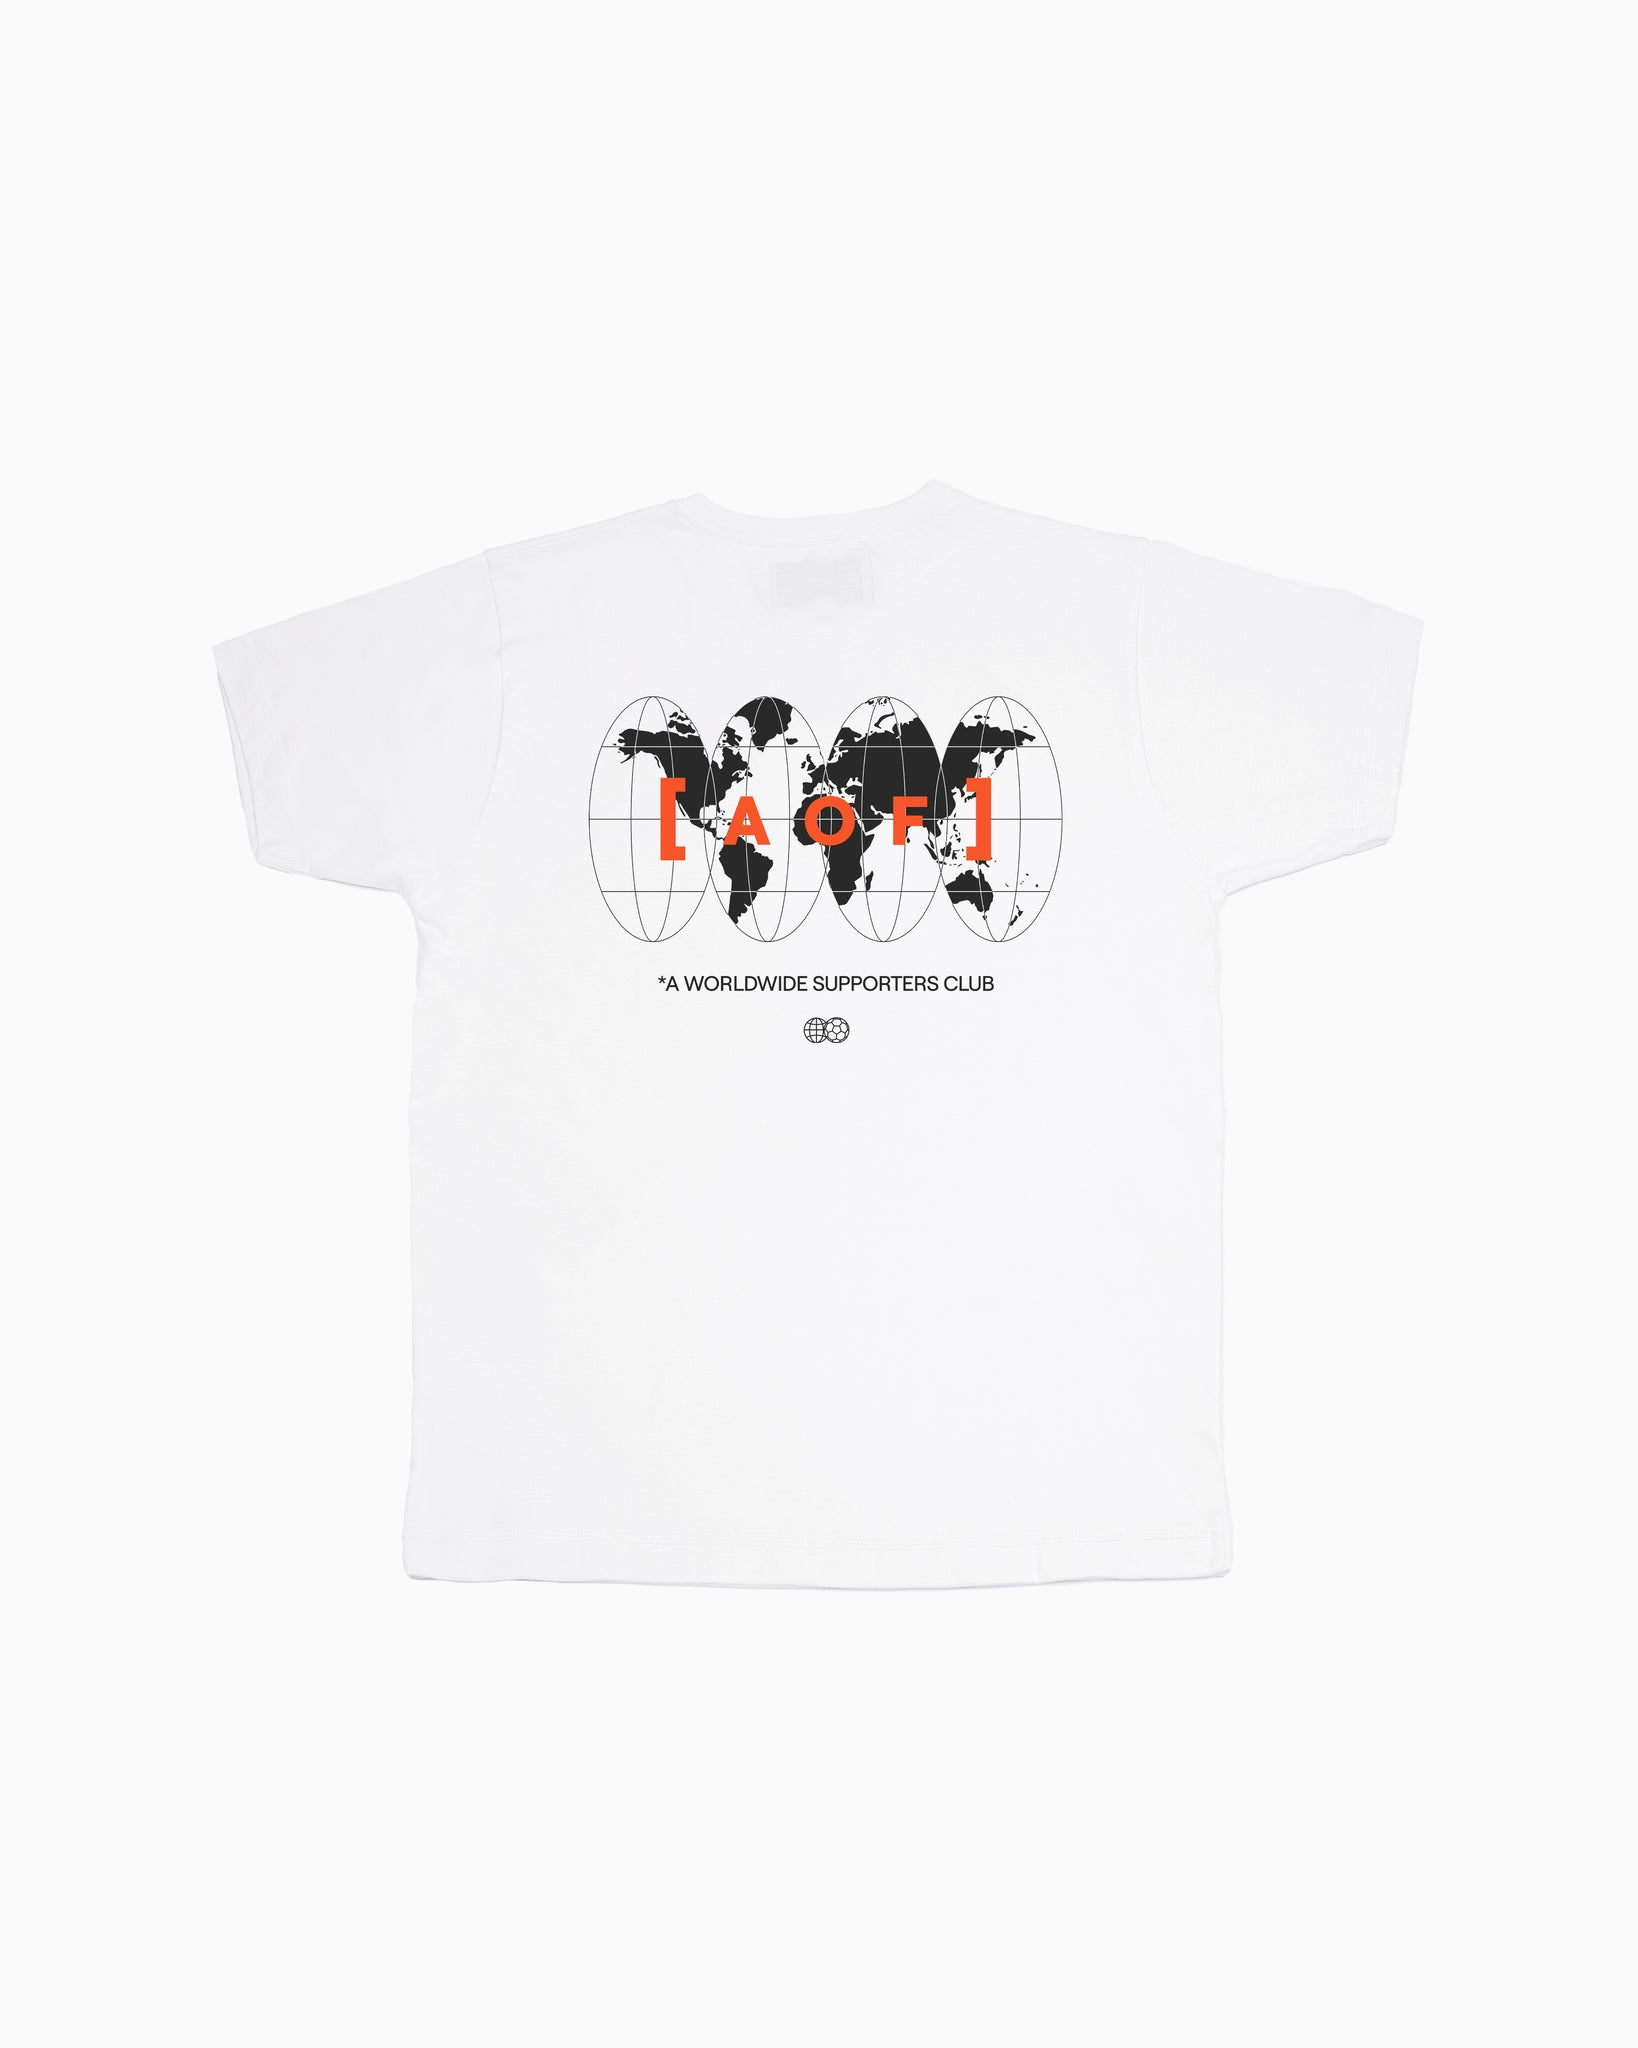 Worldwide Supporters Club - Tee or Sweat